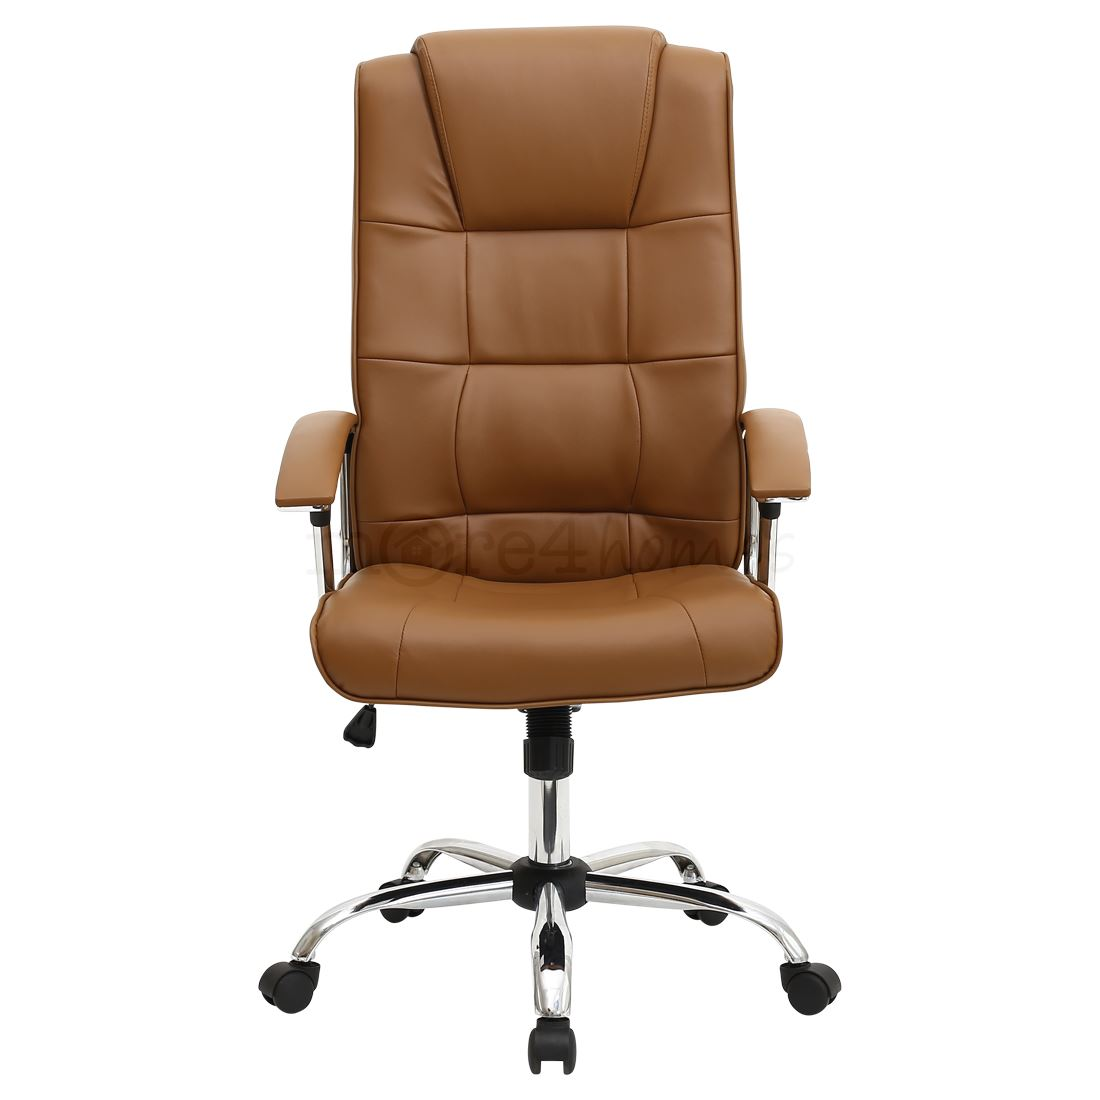 GRANDE HIGH BACK EXECUTIVE LEATHER OFFICE CHAIR PUTER